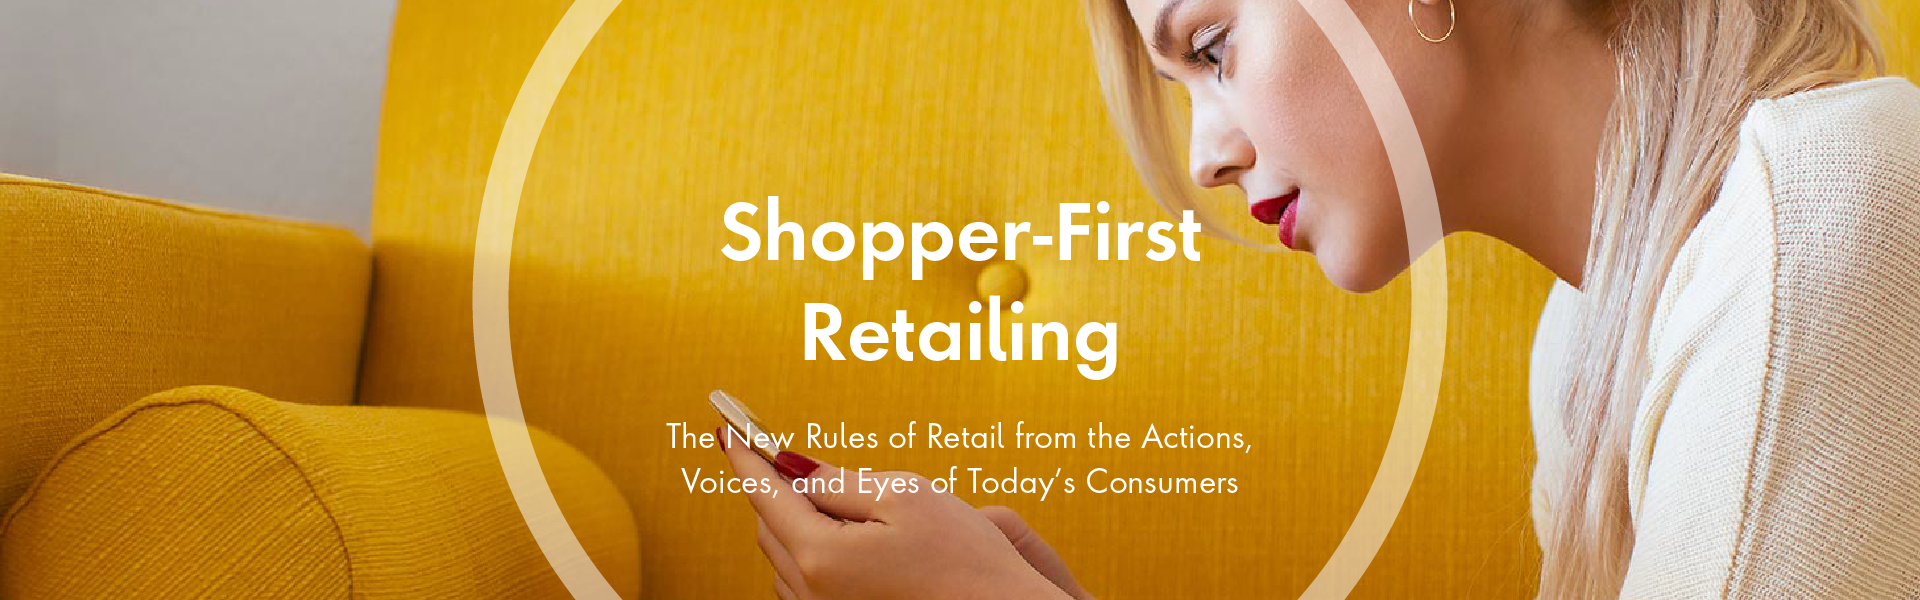 Shopper-First Retailing